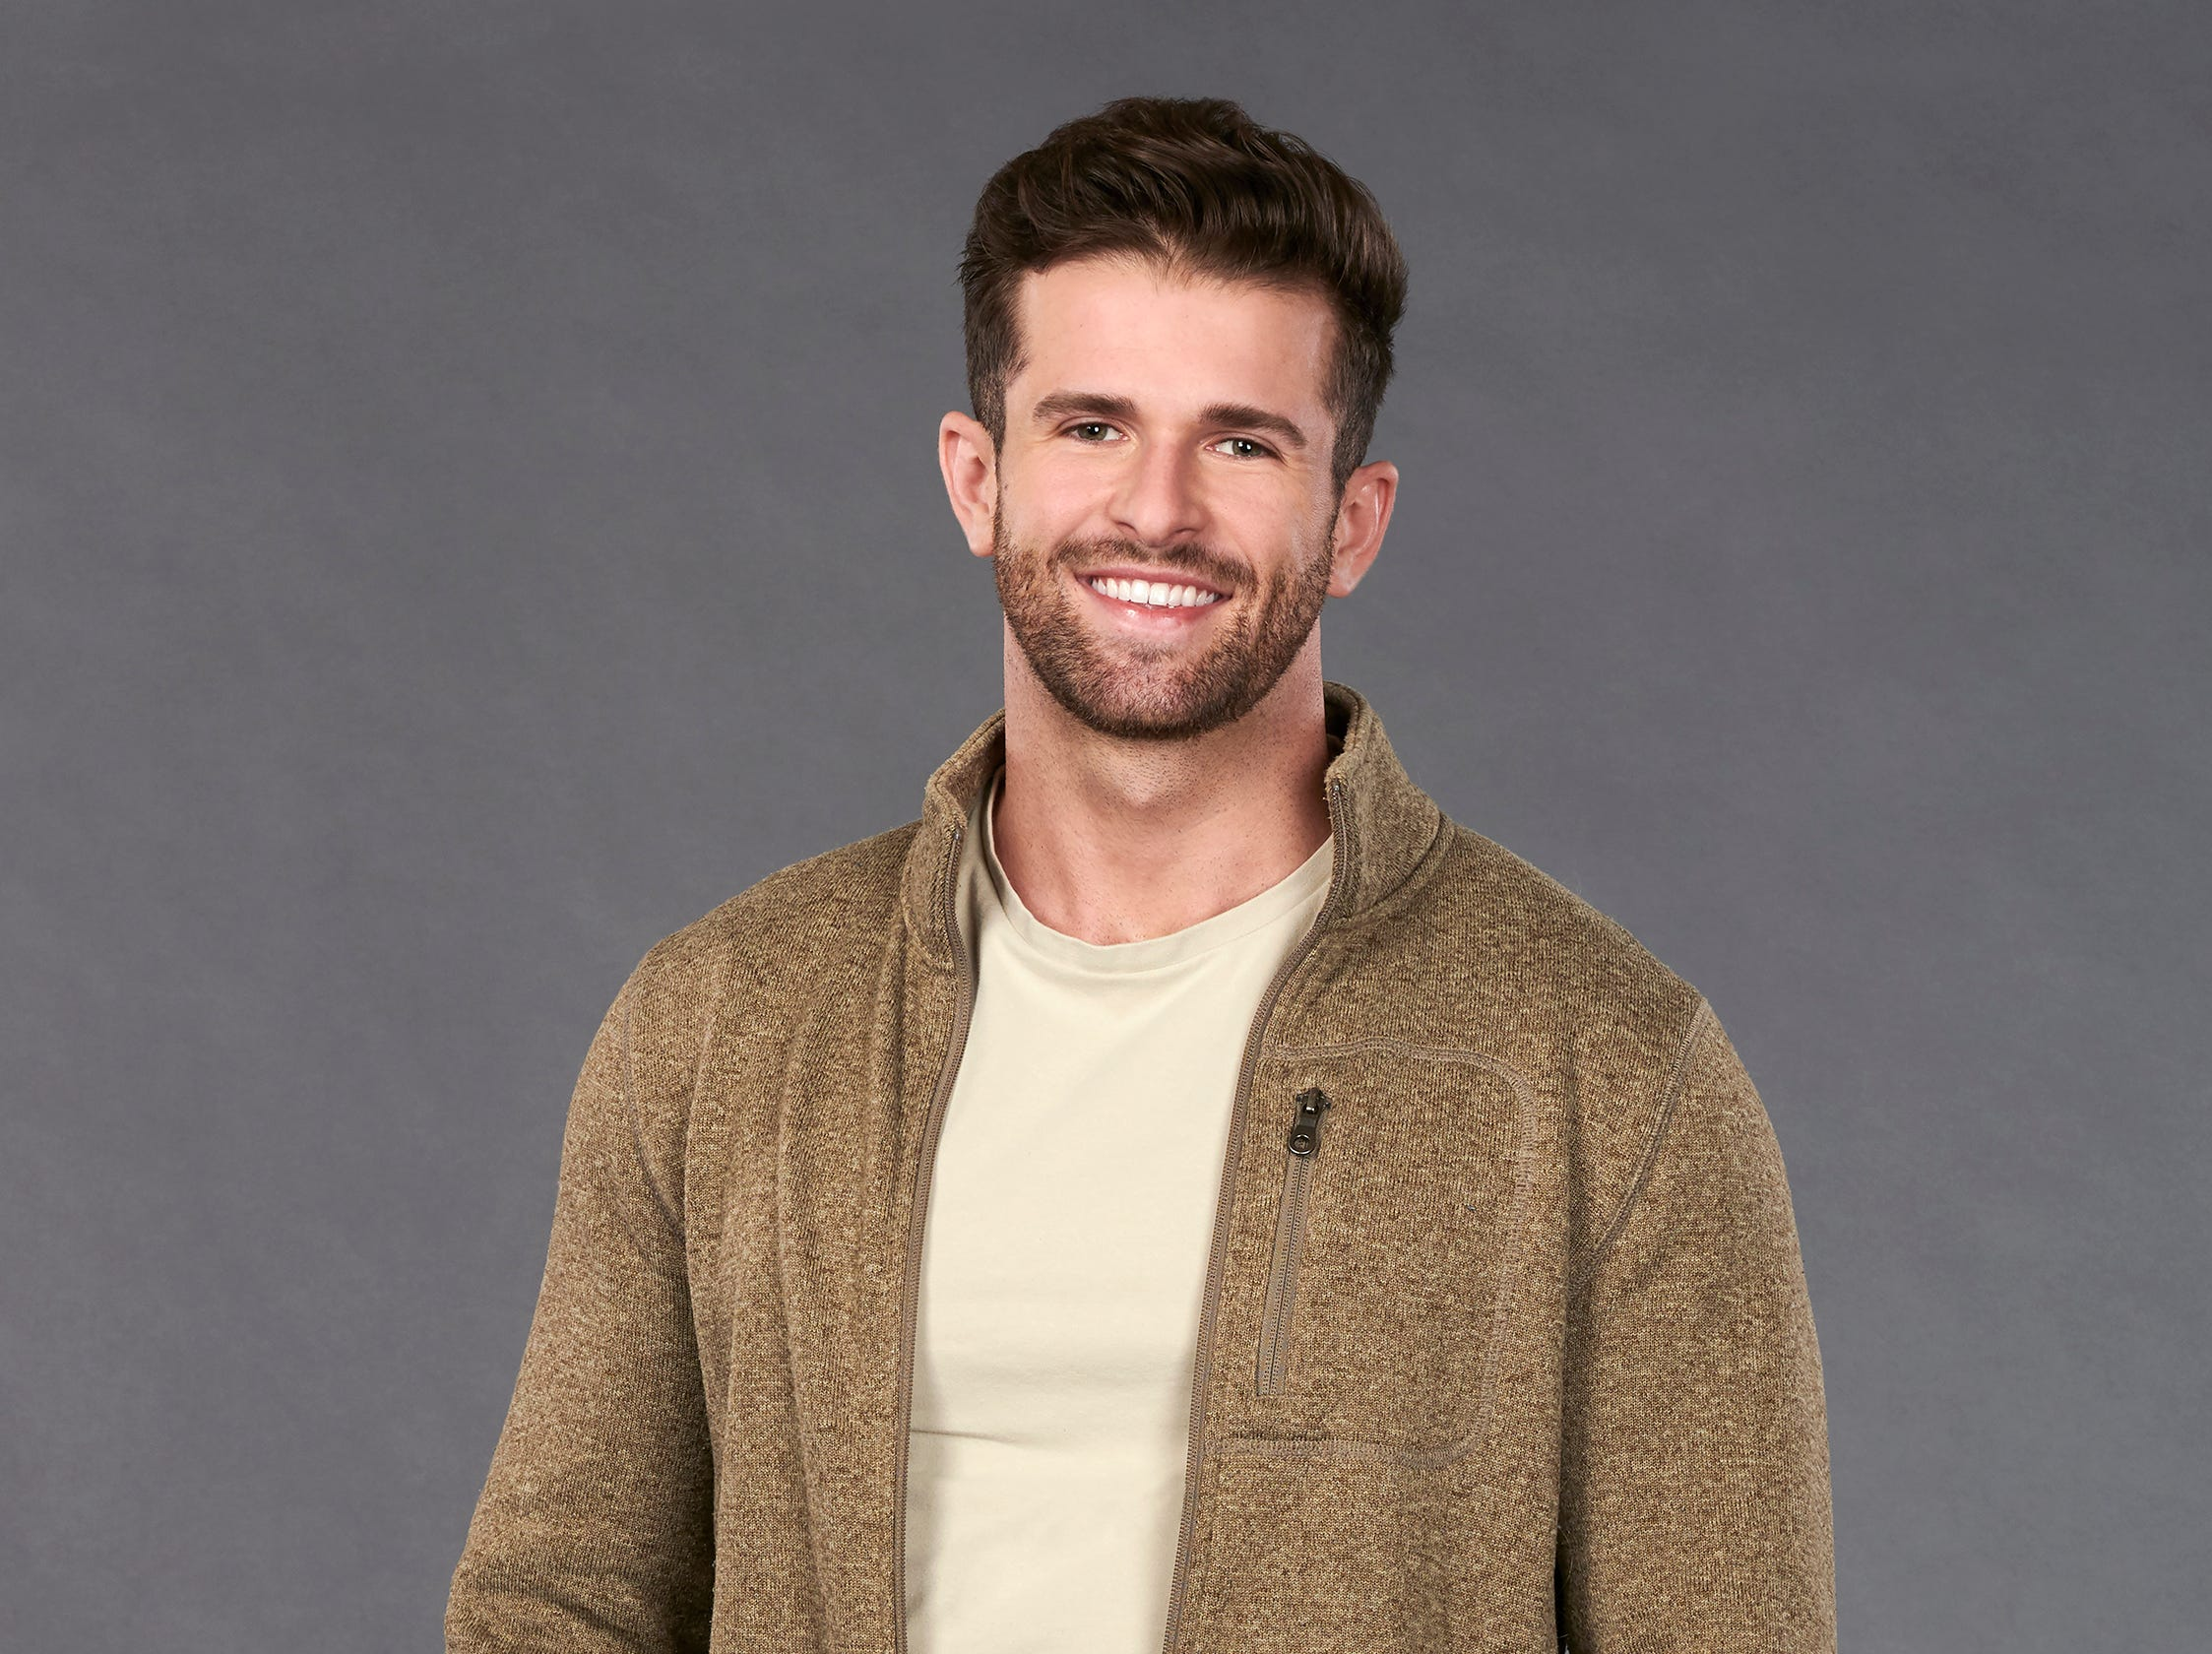 """The Bachelorette"" Season 23 contestant:  Jed, 25, Nashville, Tennessee, singer/songwriter"